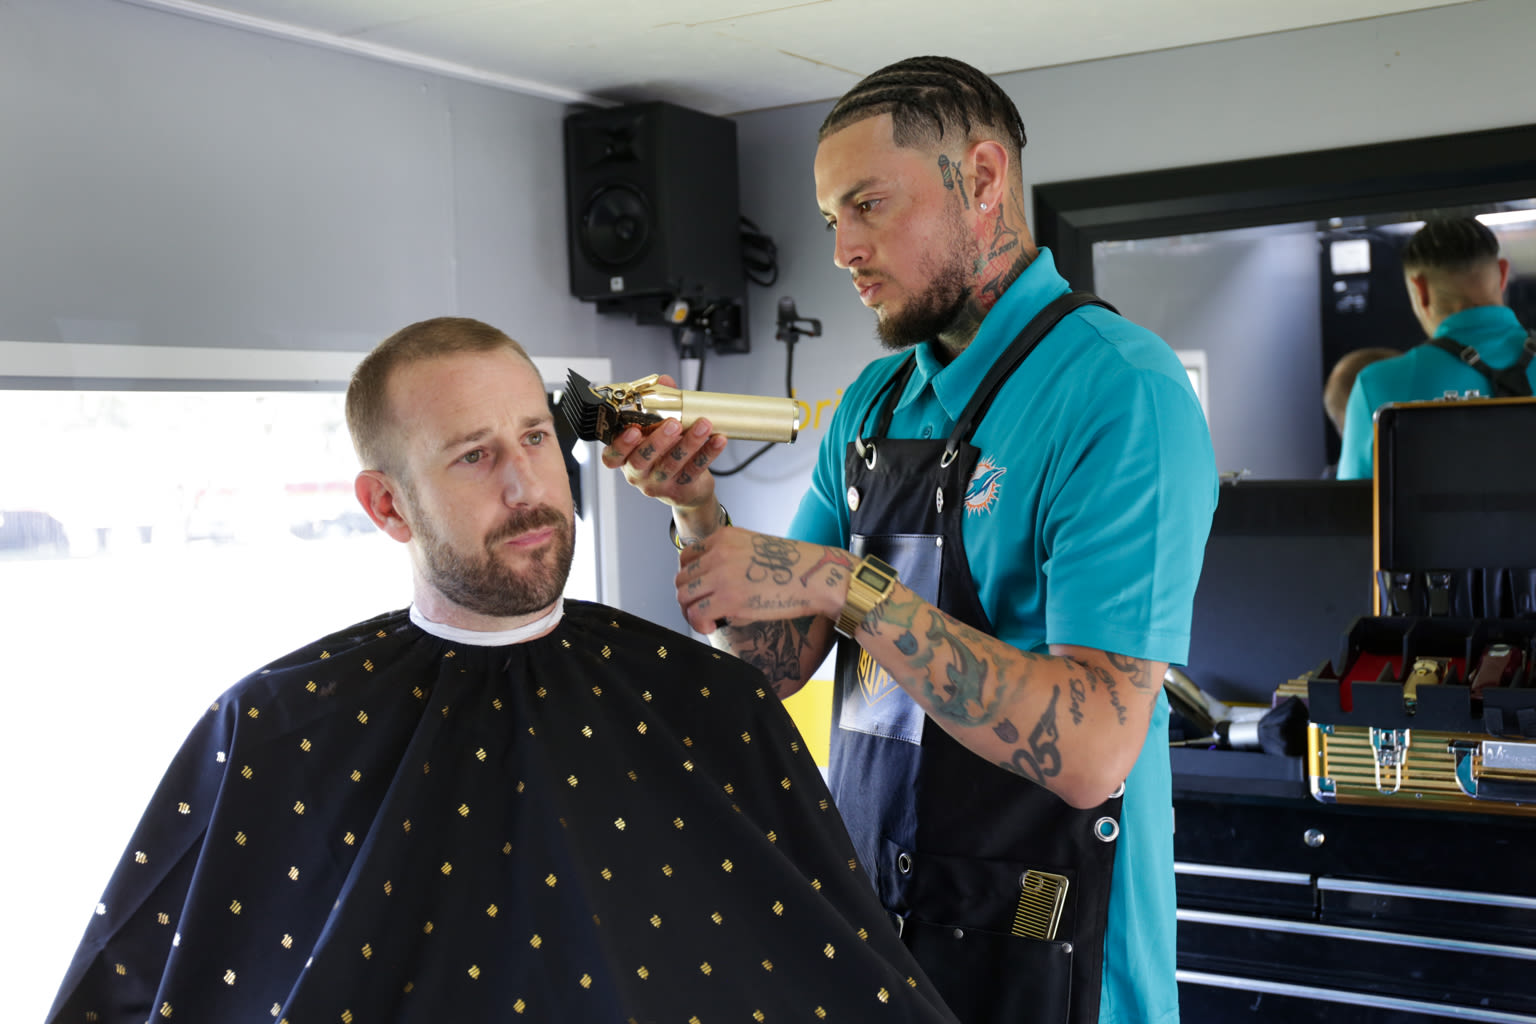 A barber cuts hair at the Virgin Trains USA Buzz Box event to improve rail safety awareness